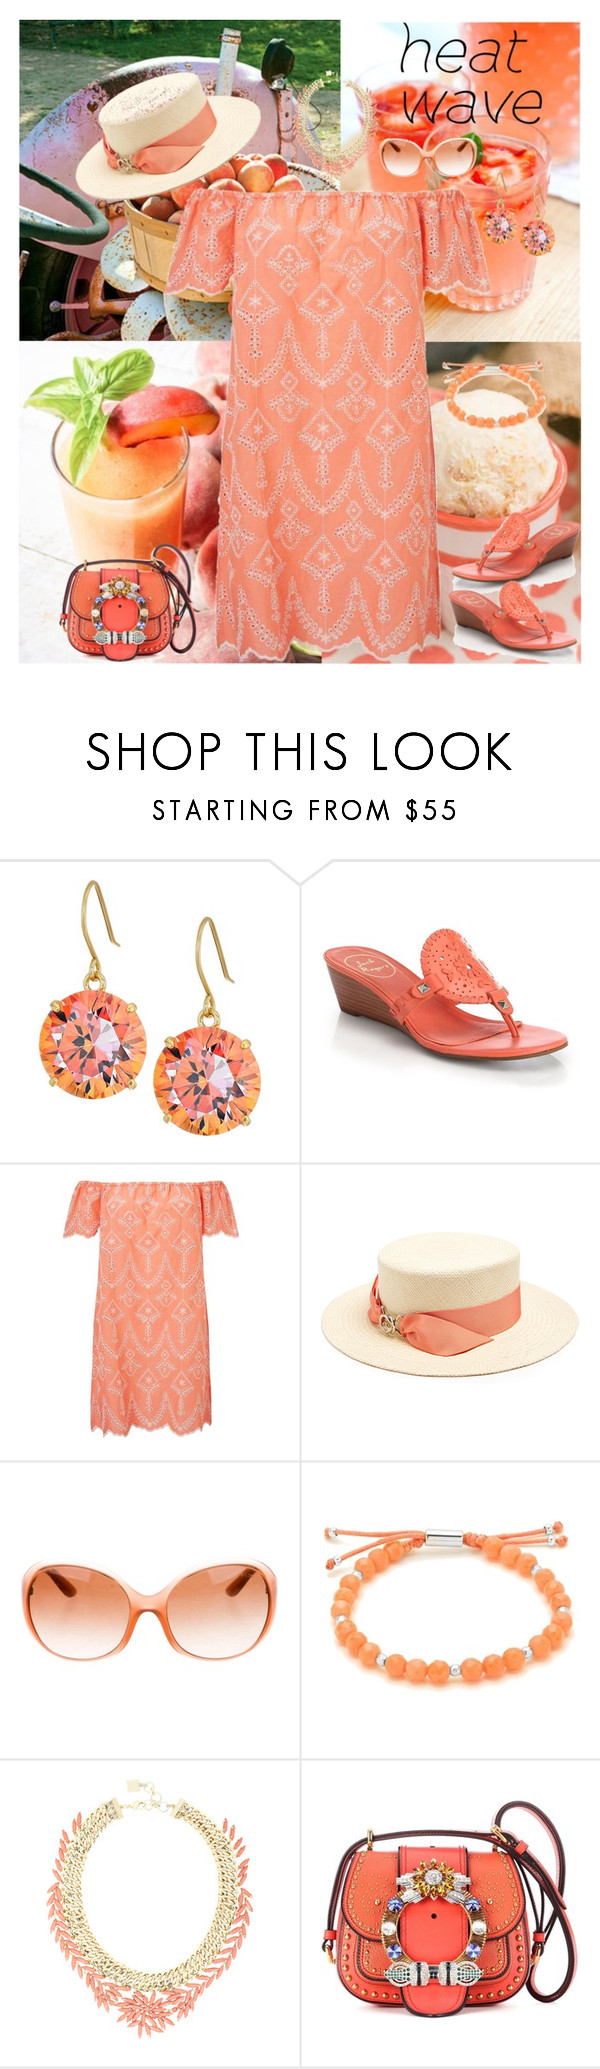 """Coral Bardot Sundress"" by horcal ❤ liked on Polyvore featuring Kate Spade, Jack Rogers, Disney, Miss Selfridge, Federica Moretti, Prada, Gorjana, BCBGMAXAZRIA, Miu Miu and heatwave"